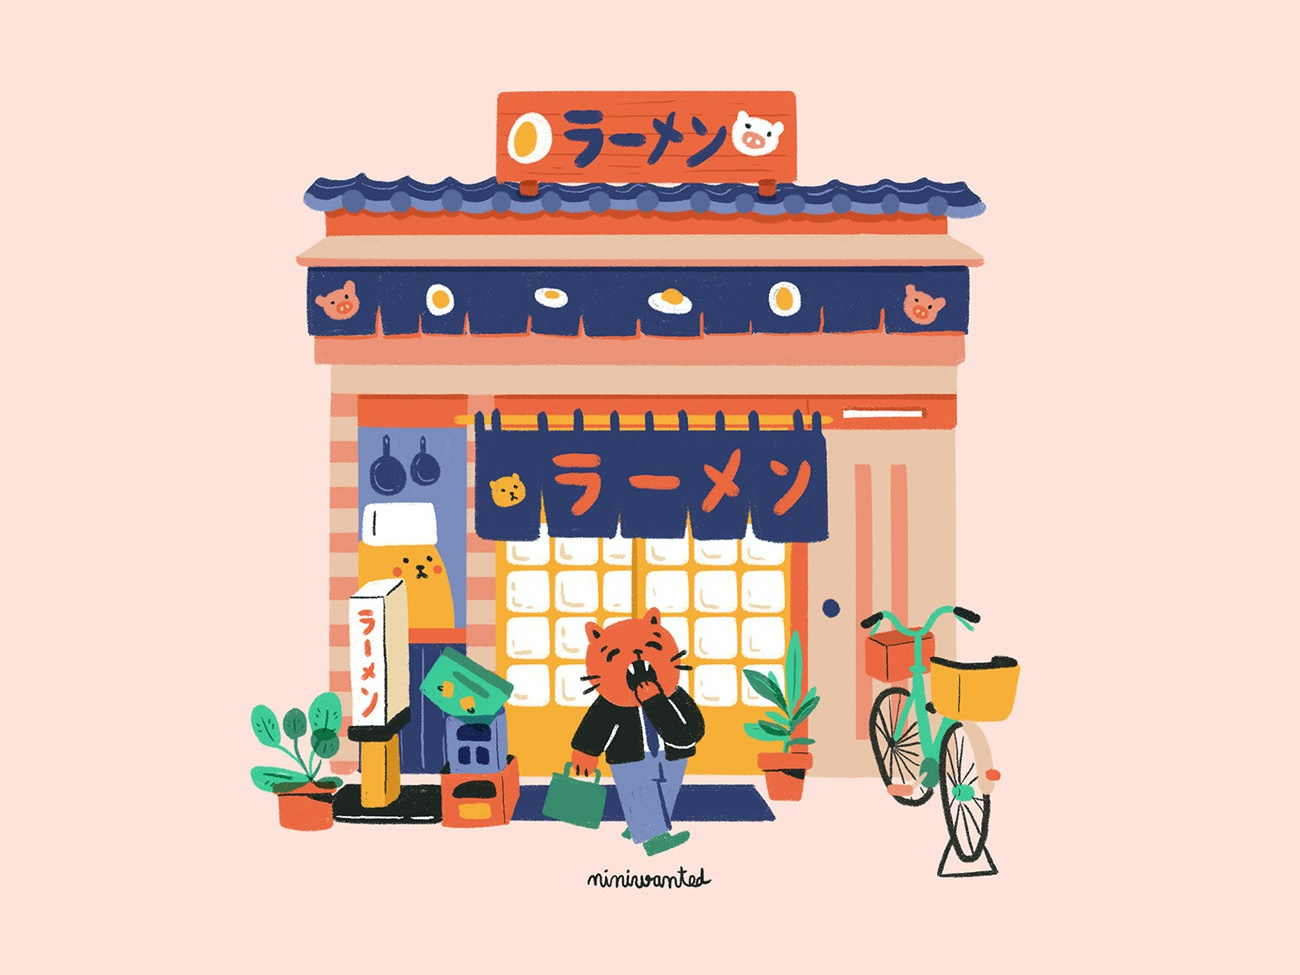 Ramen Shop facade ramen cute bike soup japanese food character characters cat illustration building cat japan